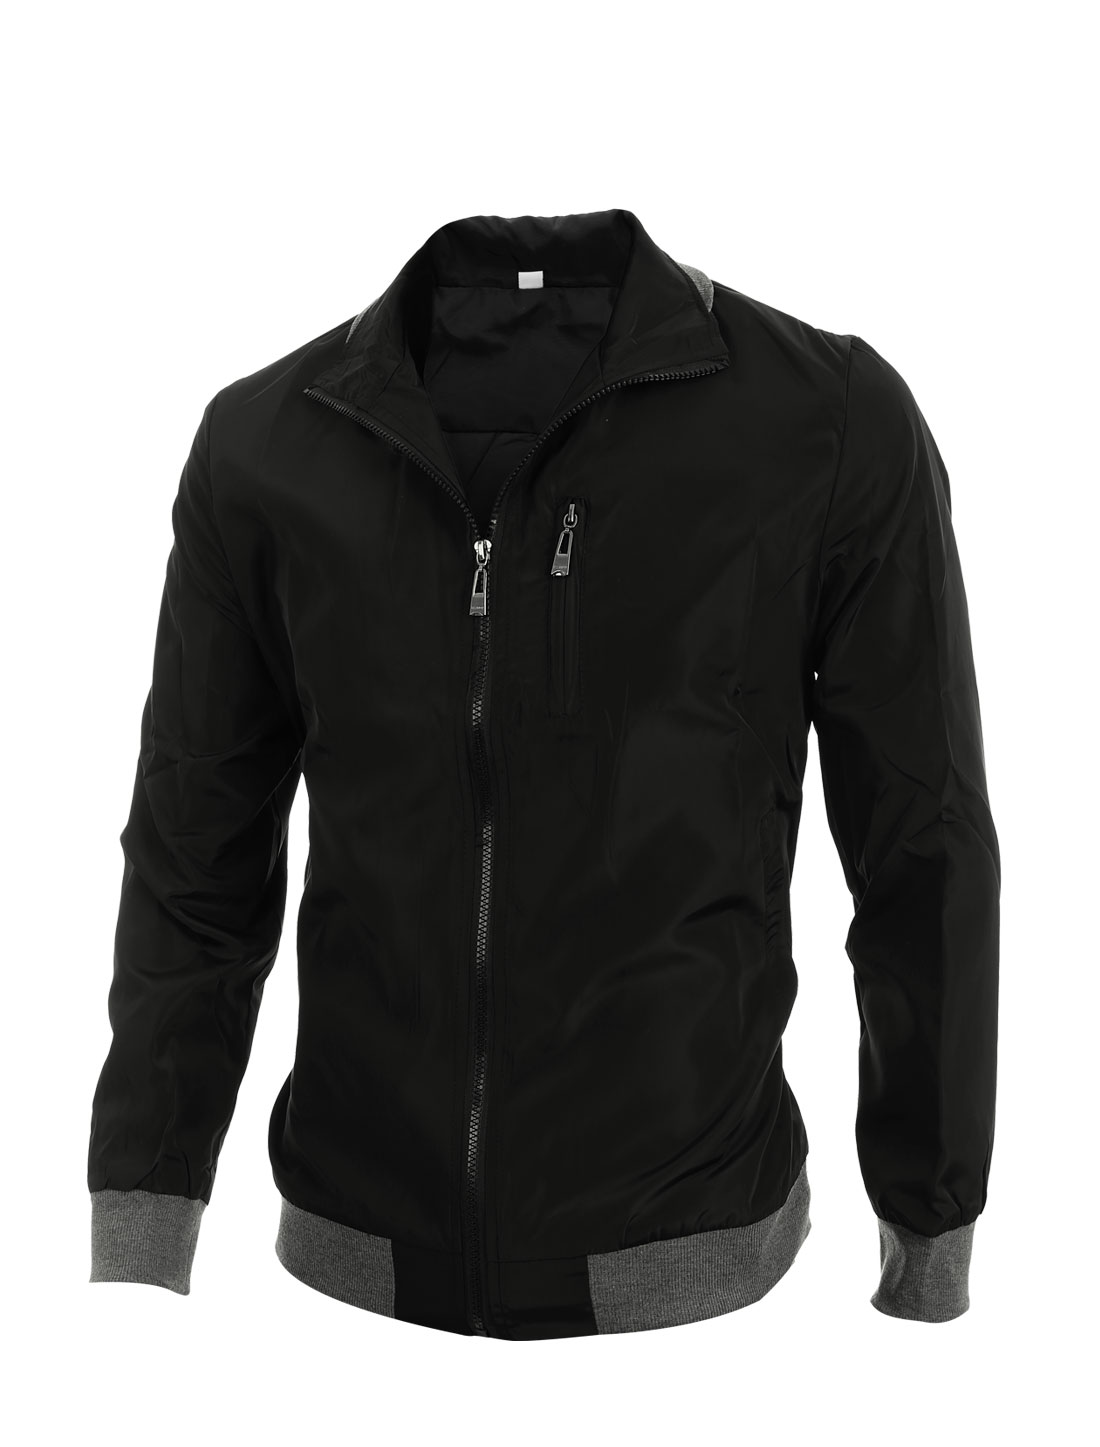 Men Convertible Collar Long Sleeve Zipper Design Thin Jacket Black M